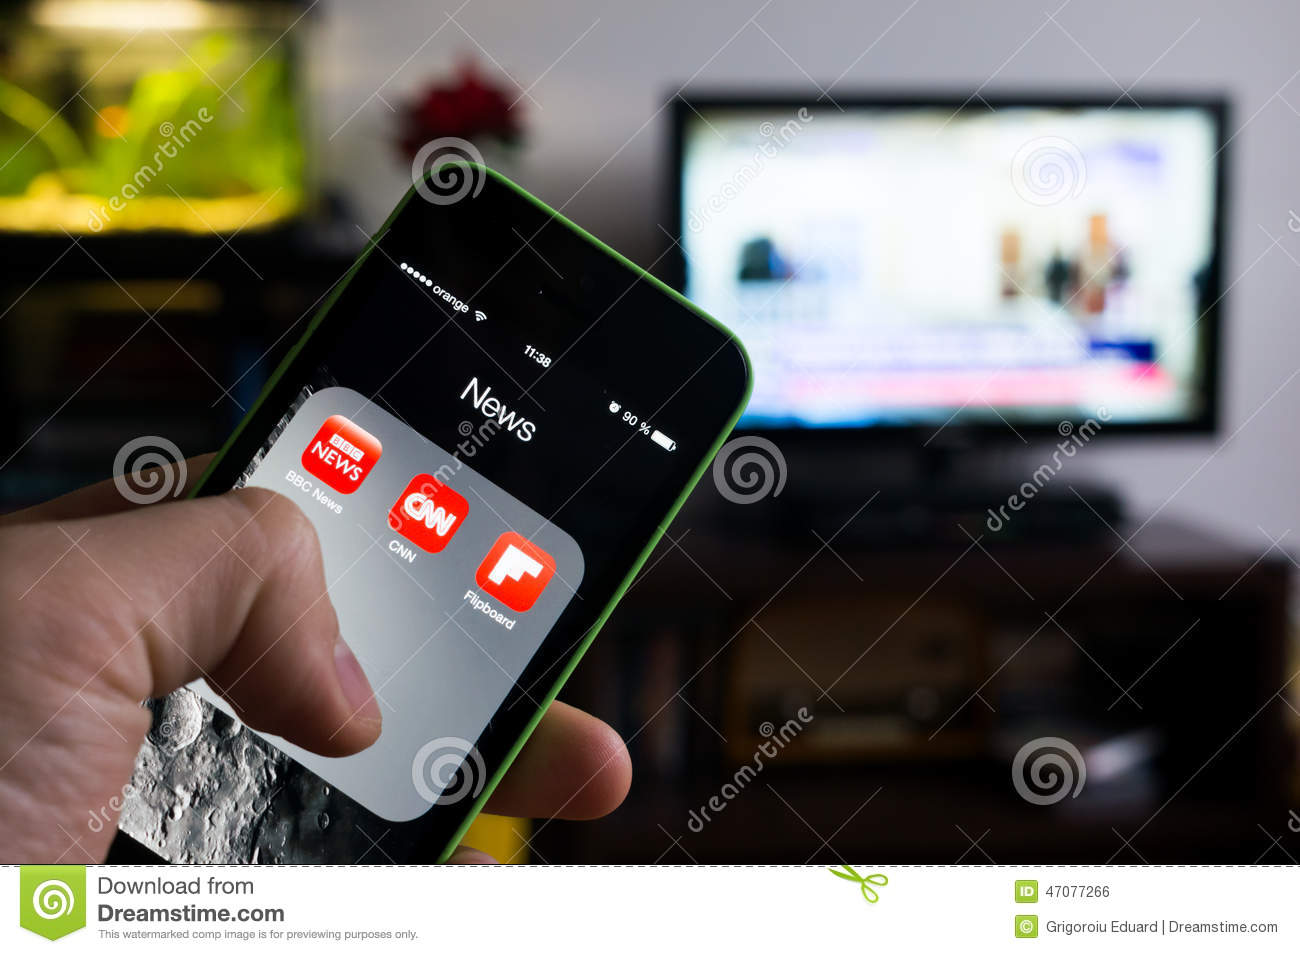 BUCHAREST, ROMANIA - NOVEMBER 21, 2014: Photo of hand holding an iphone with news apps on screen and tv set in the background with